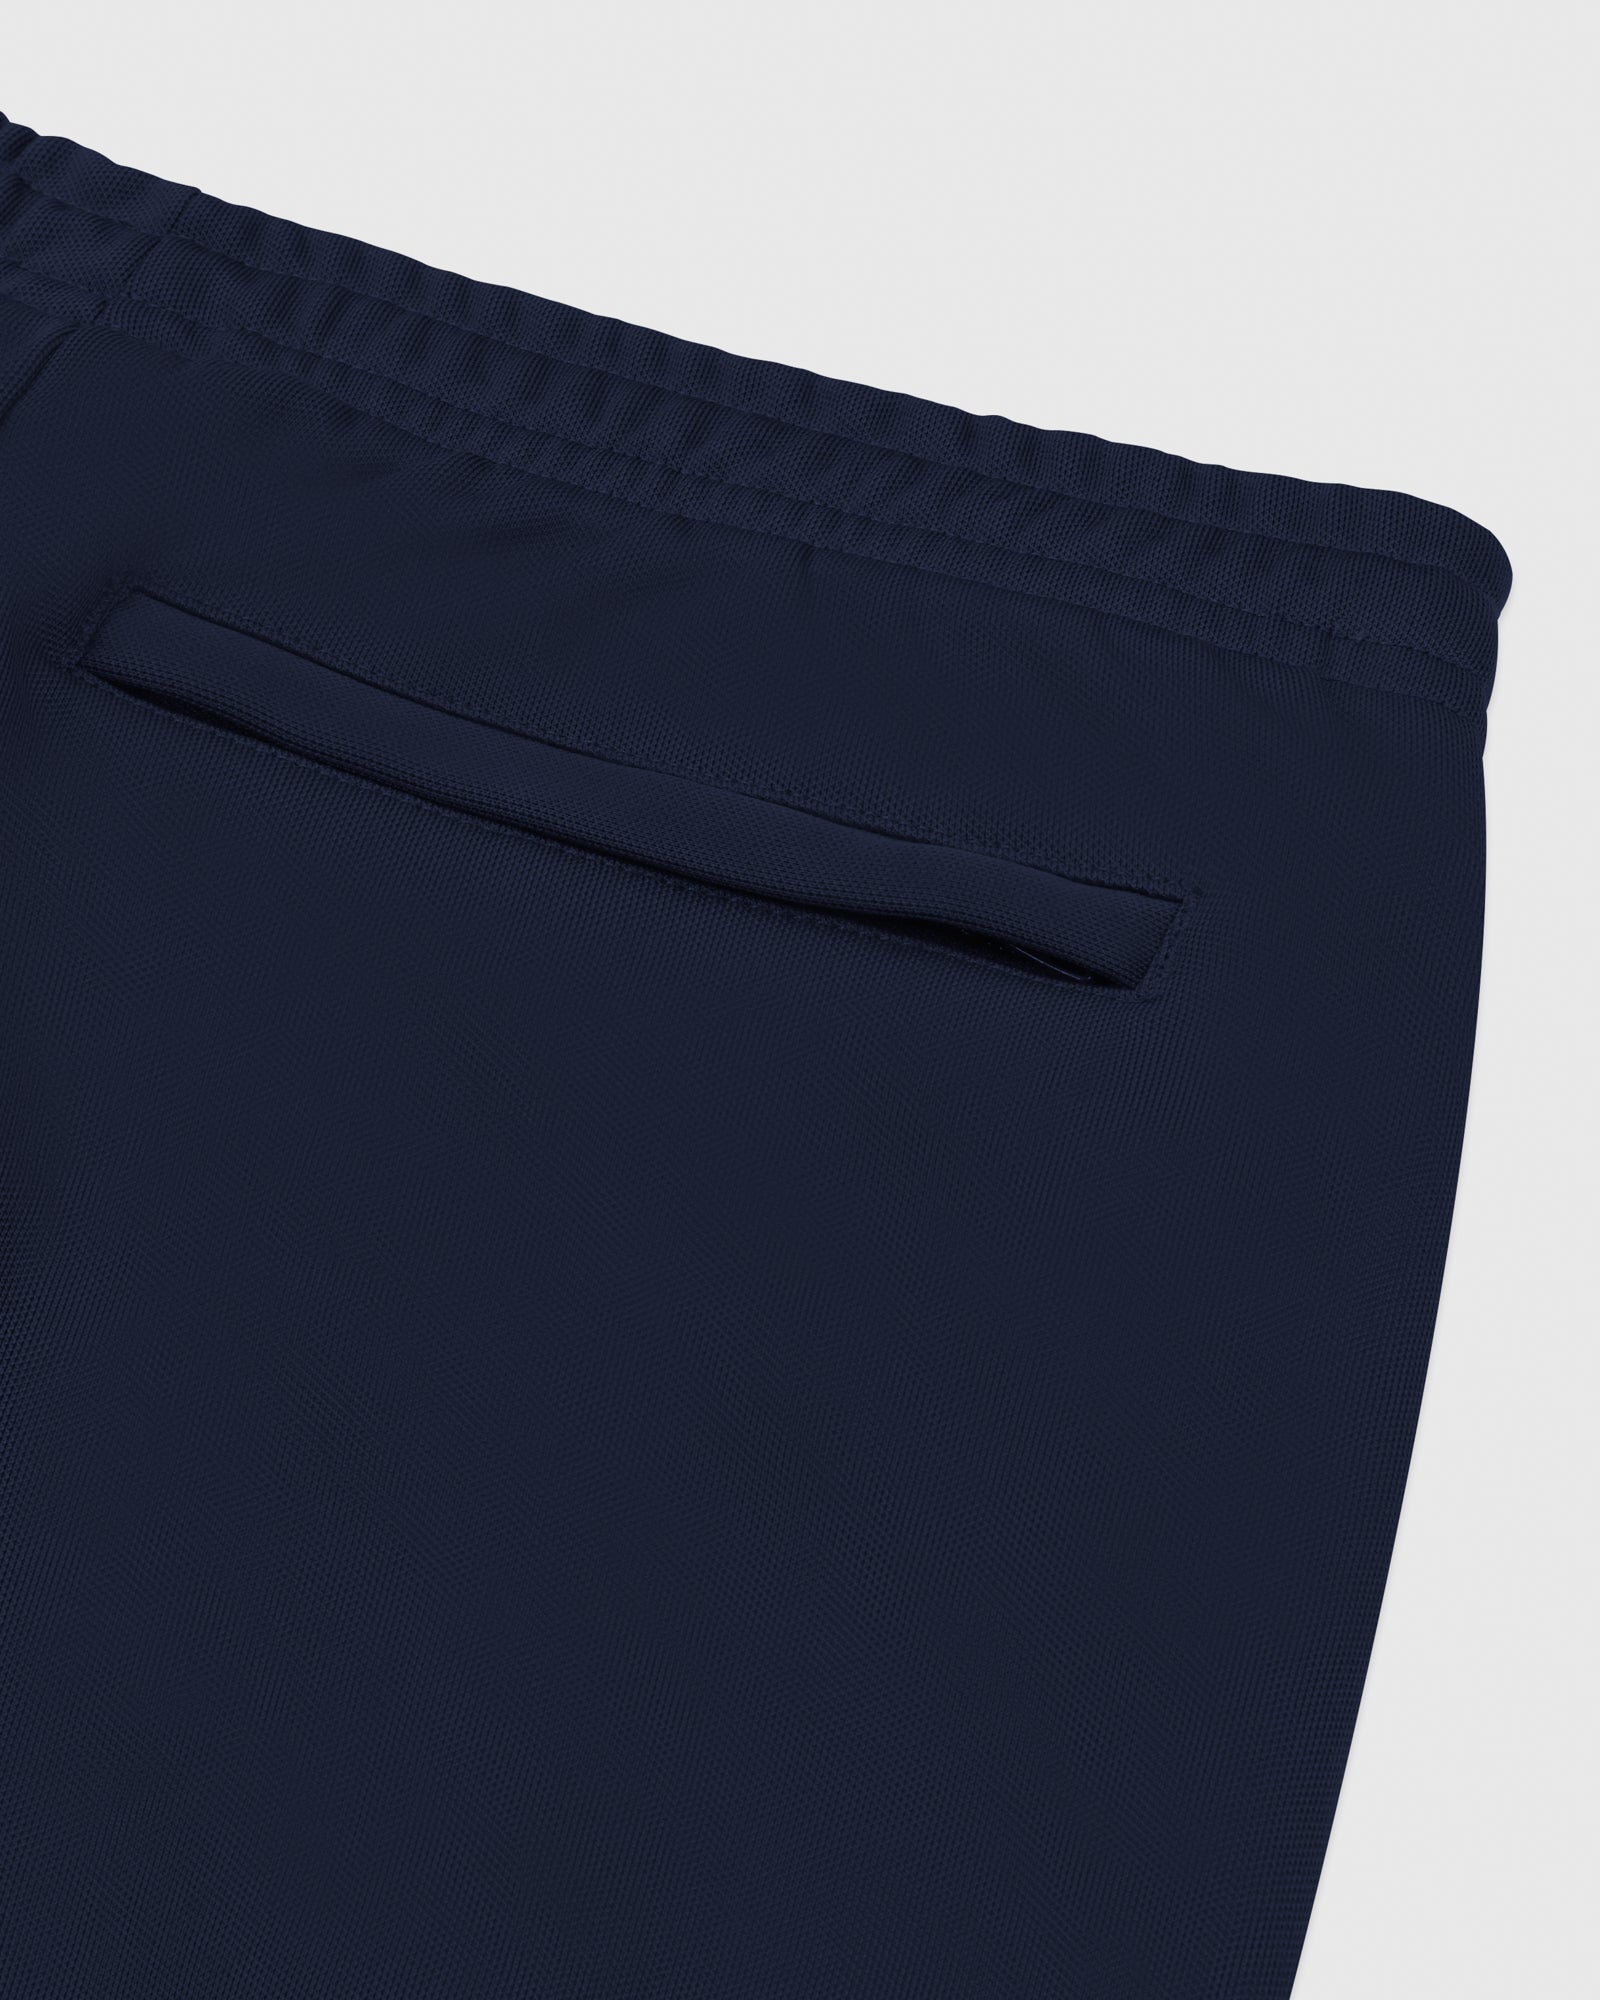 OVO PIQUE PANT - NAVY IMAGE #4